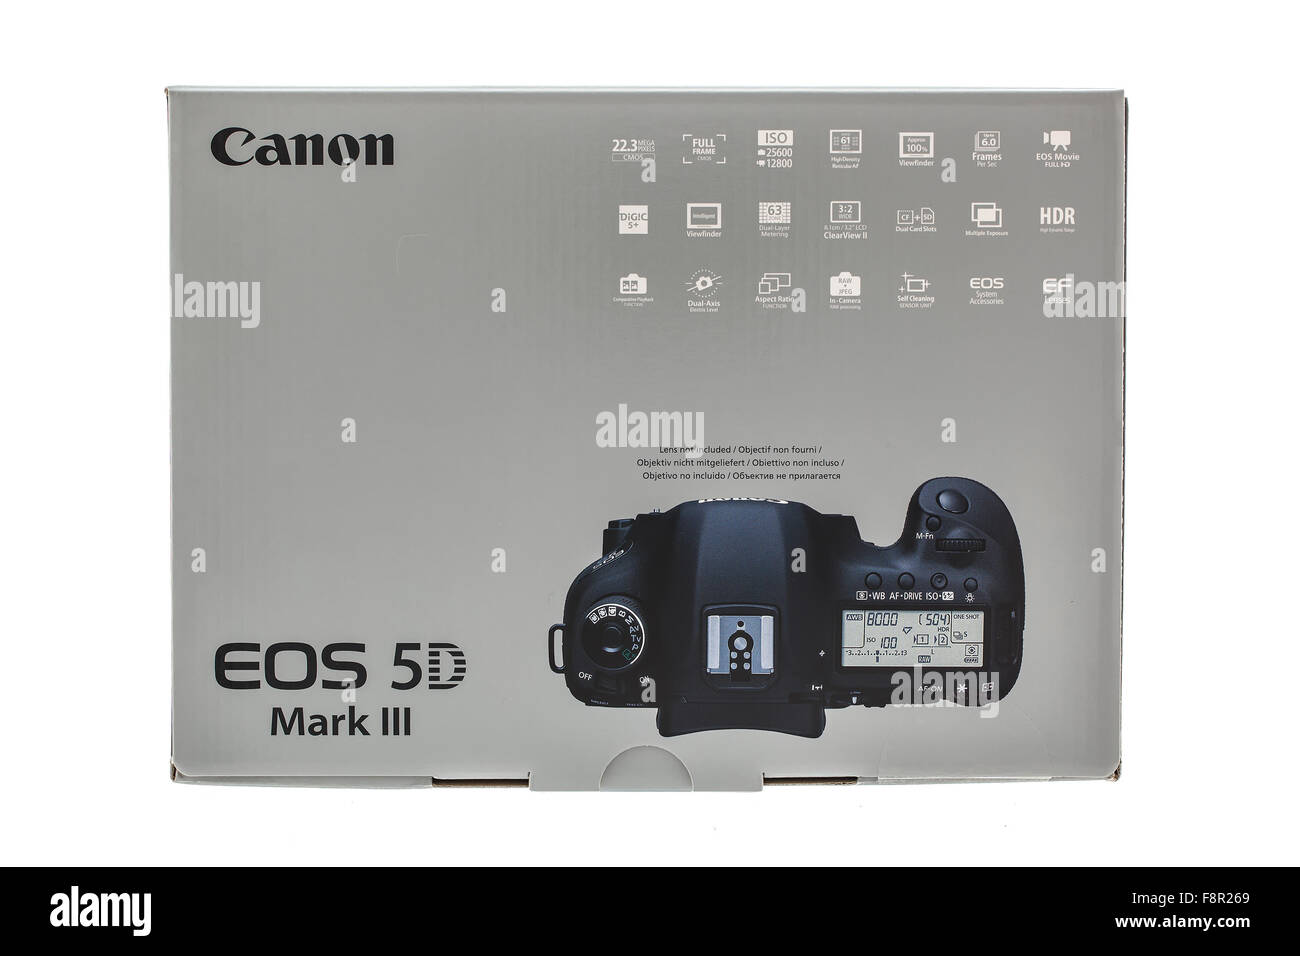 Canon 5D Mark III DSLR Camera in Unopened Box on a White background - Stock Image